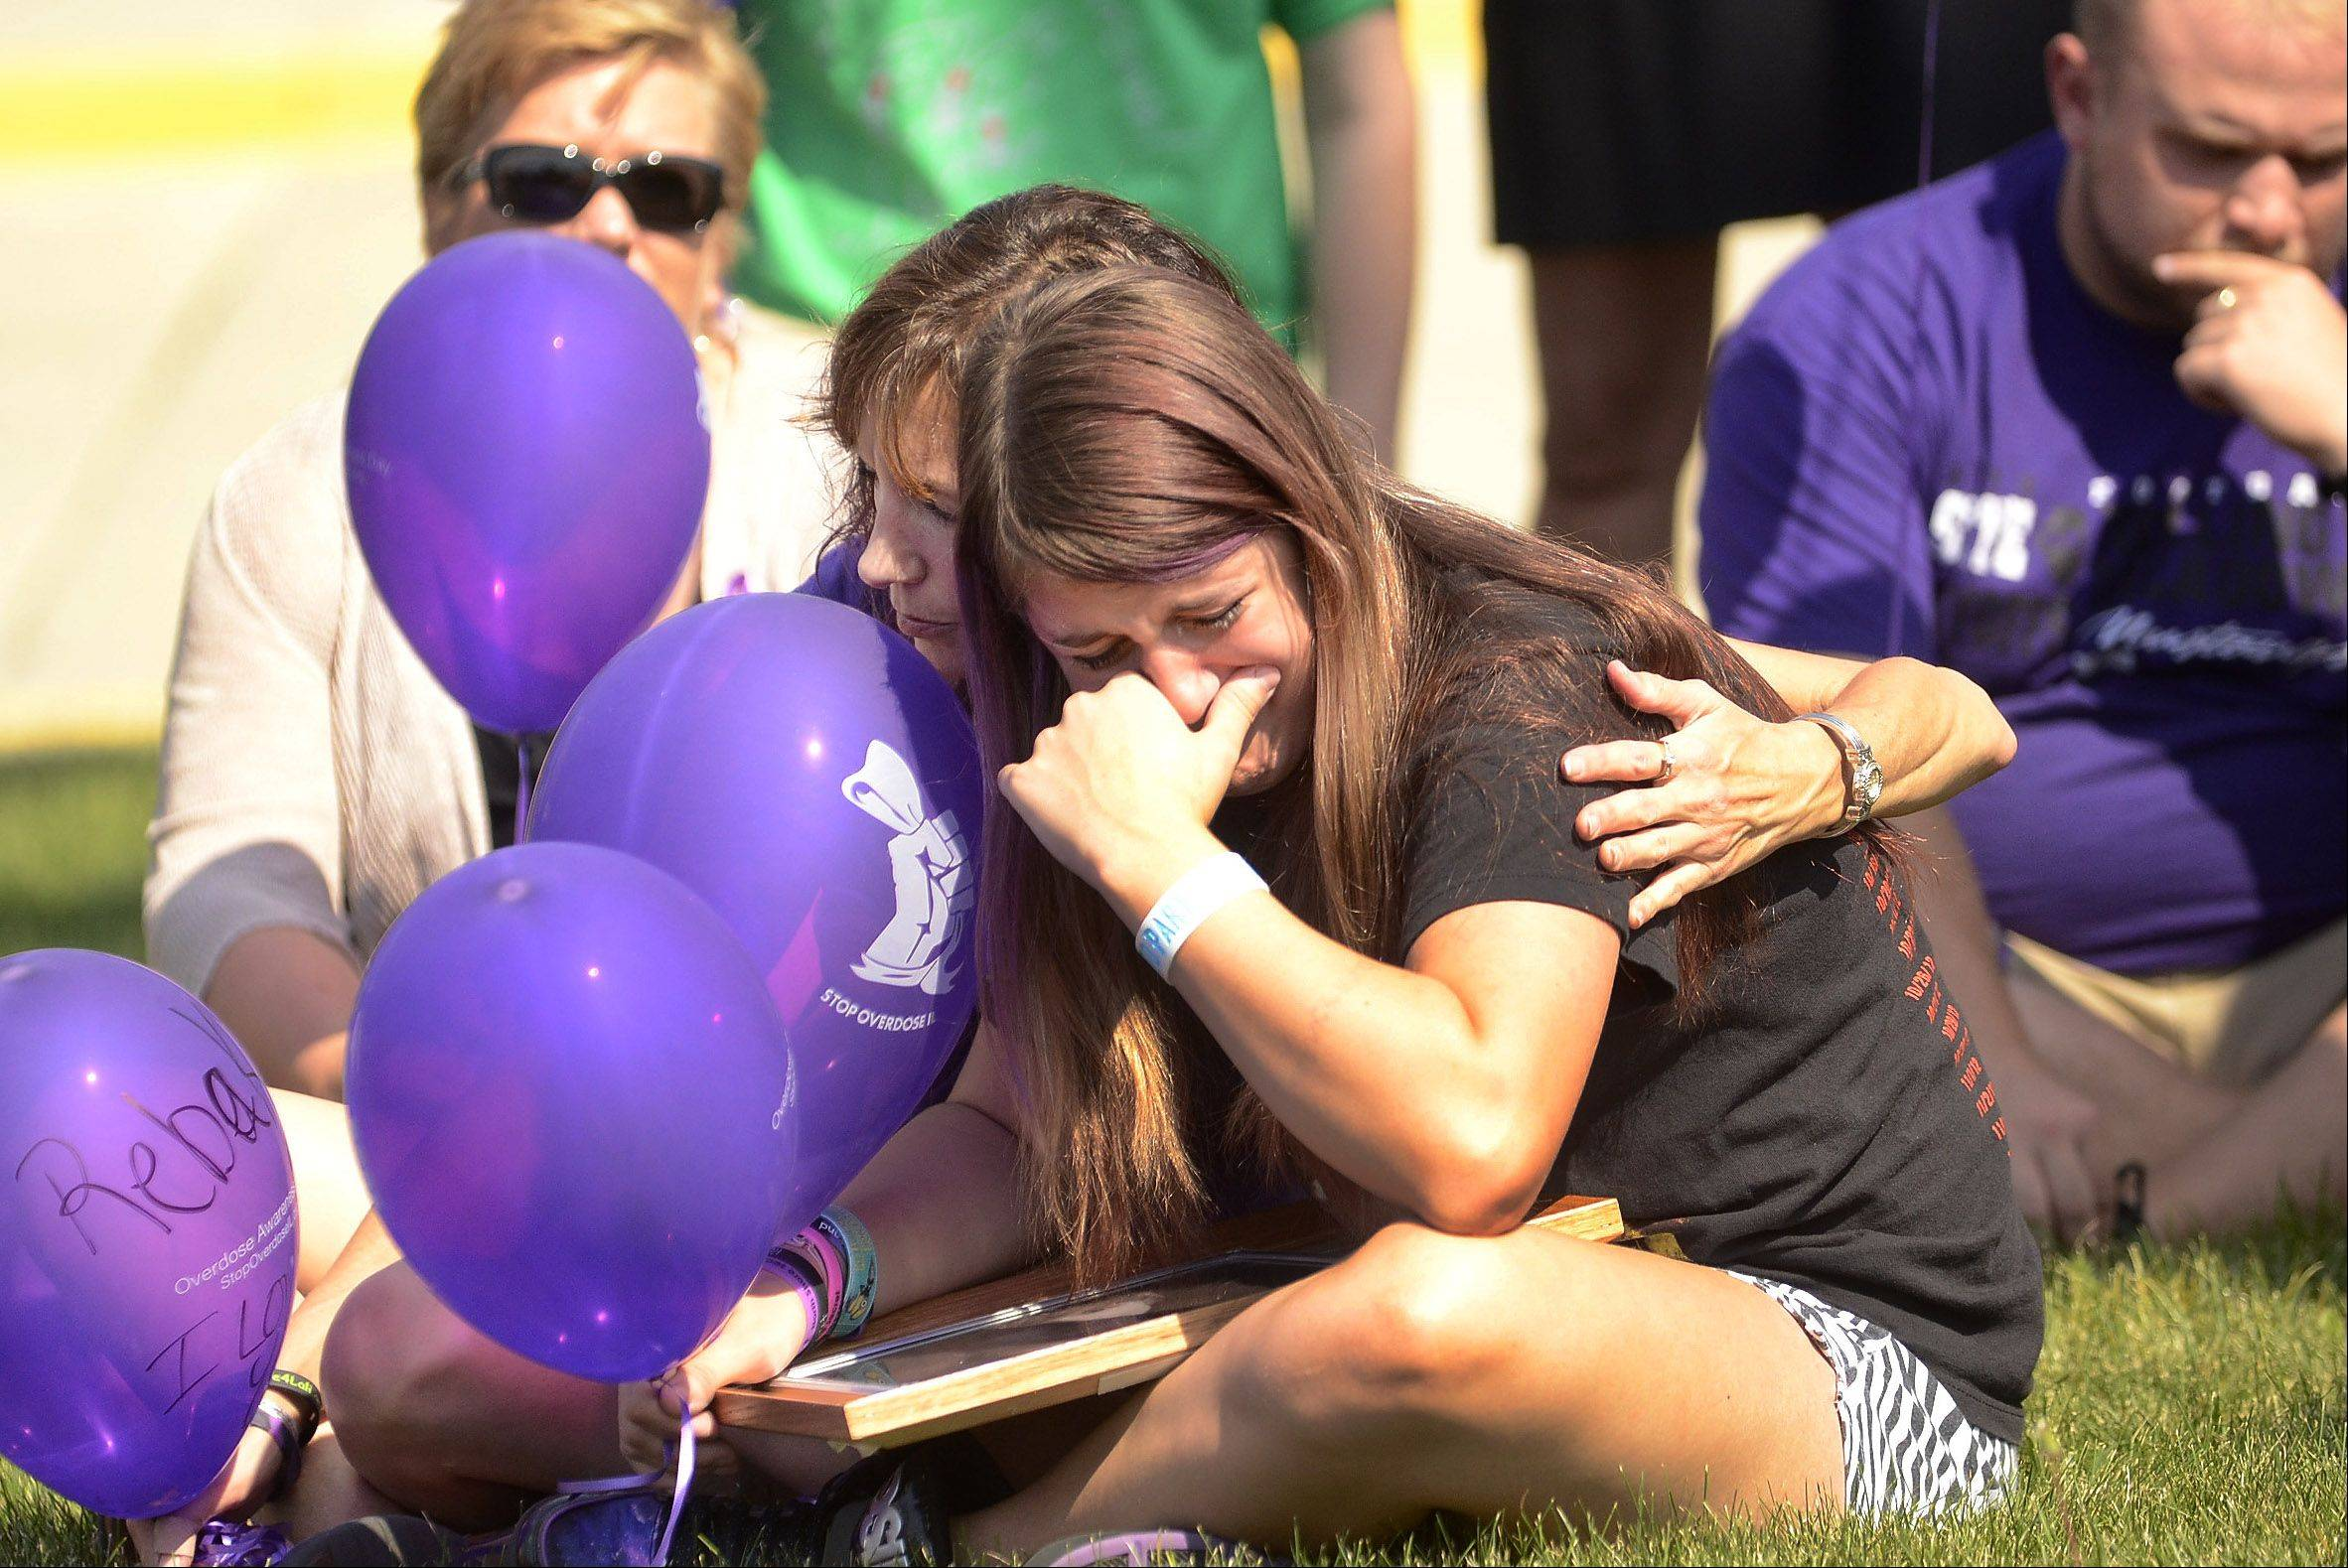 Overdose rally in Schaumburg calls for action